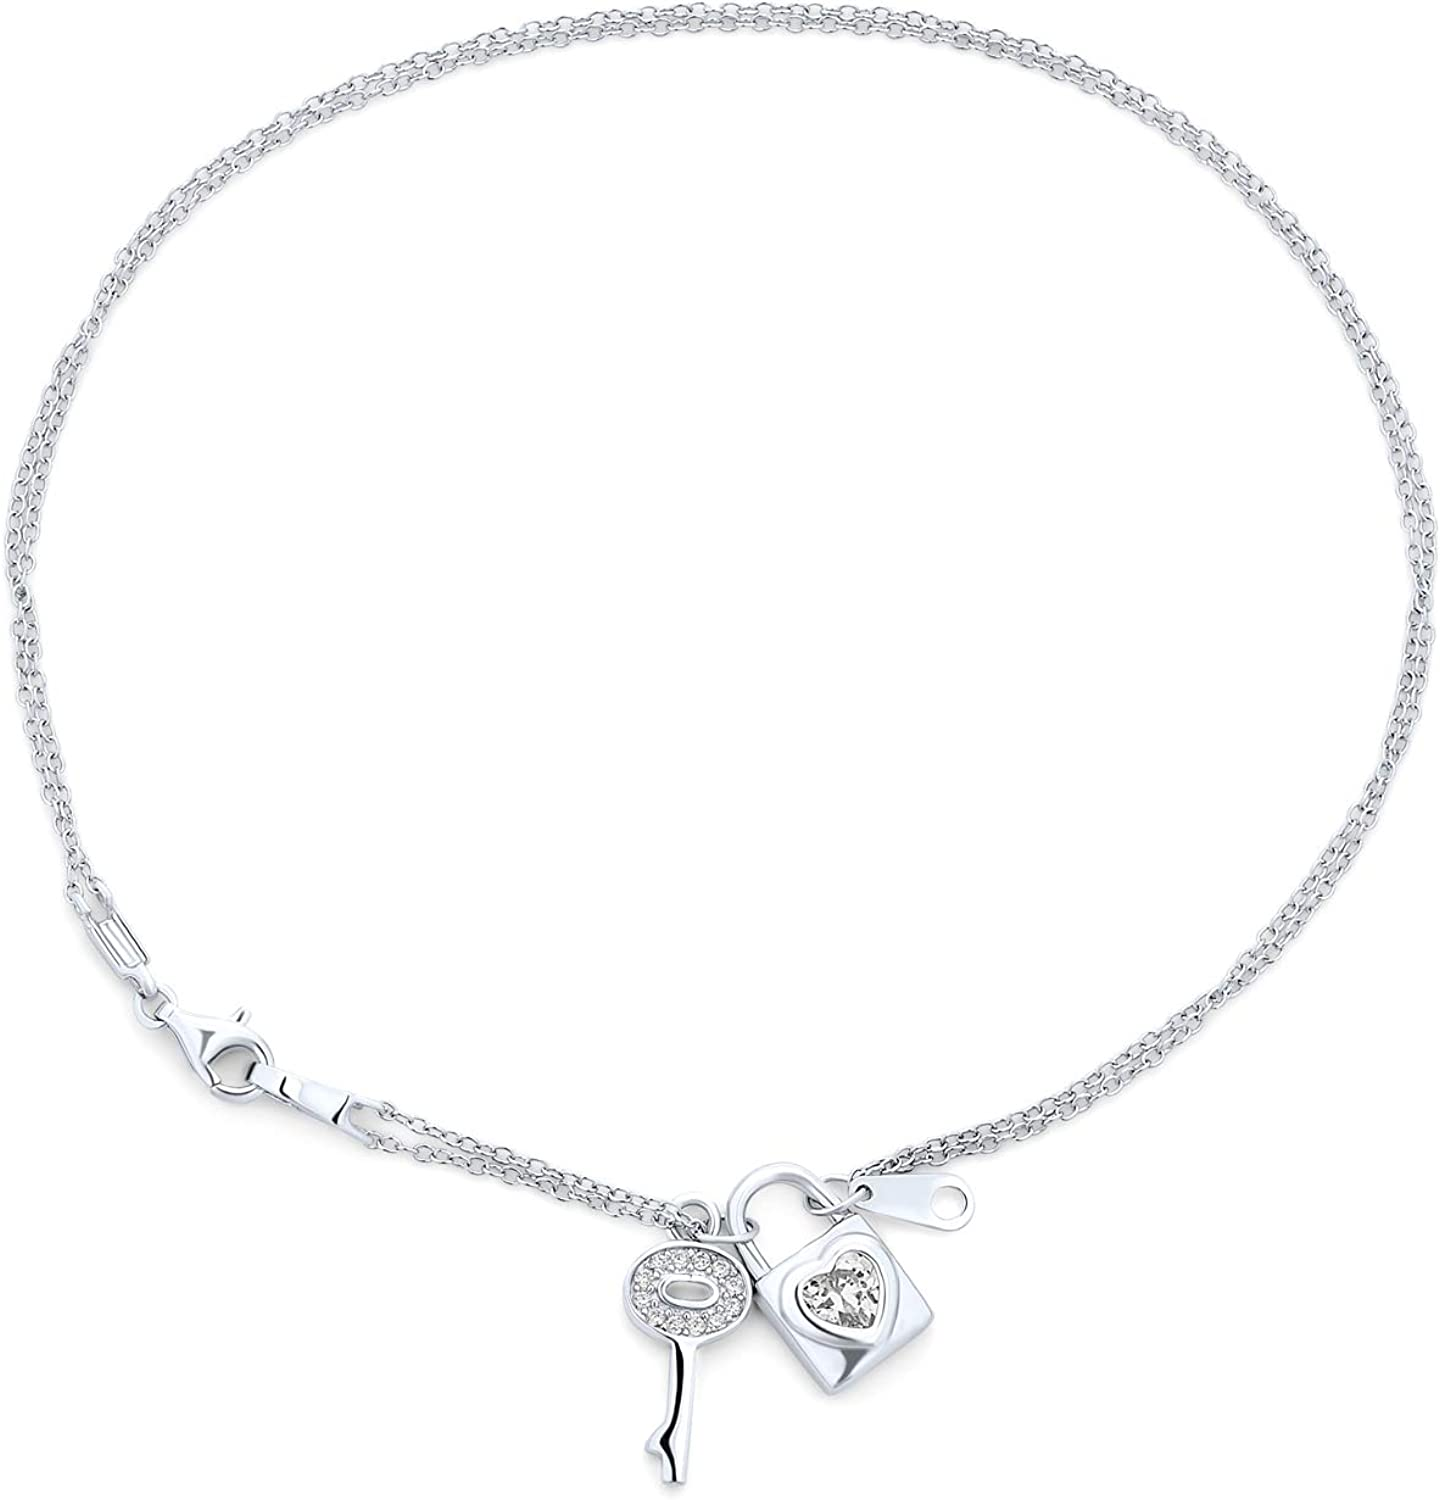 Solid 925 Sterling Silver CZ Cubic Zirconia Heart Key Lobster Charm Pendant